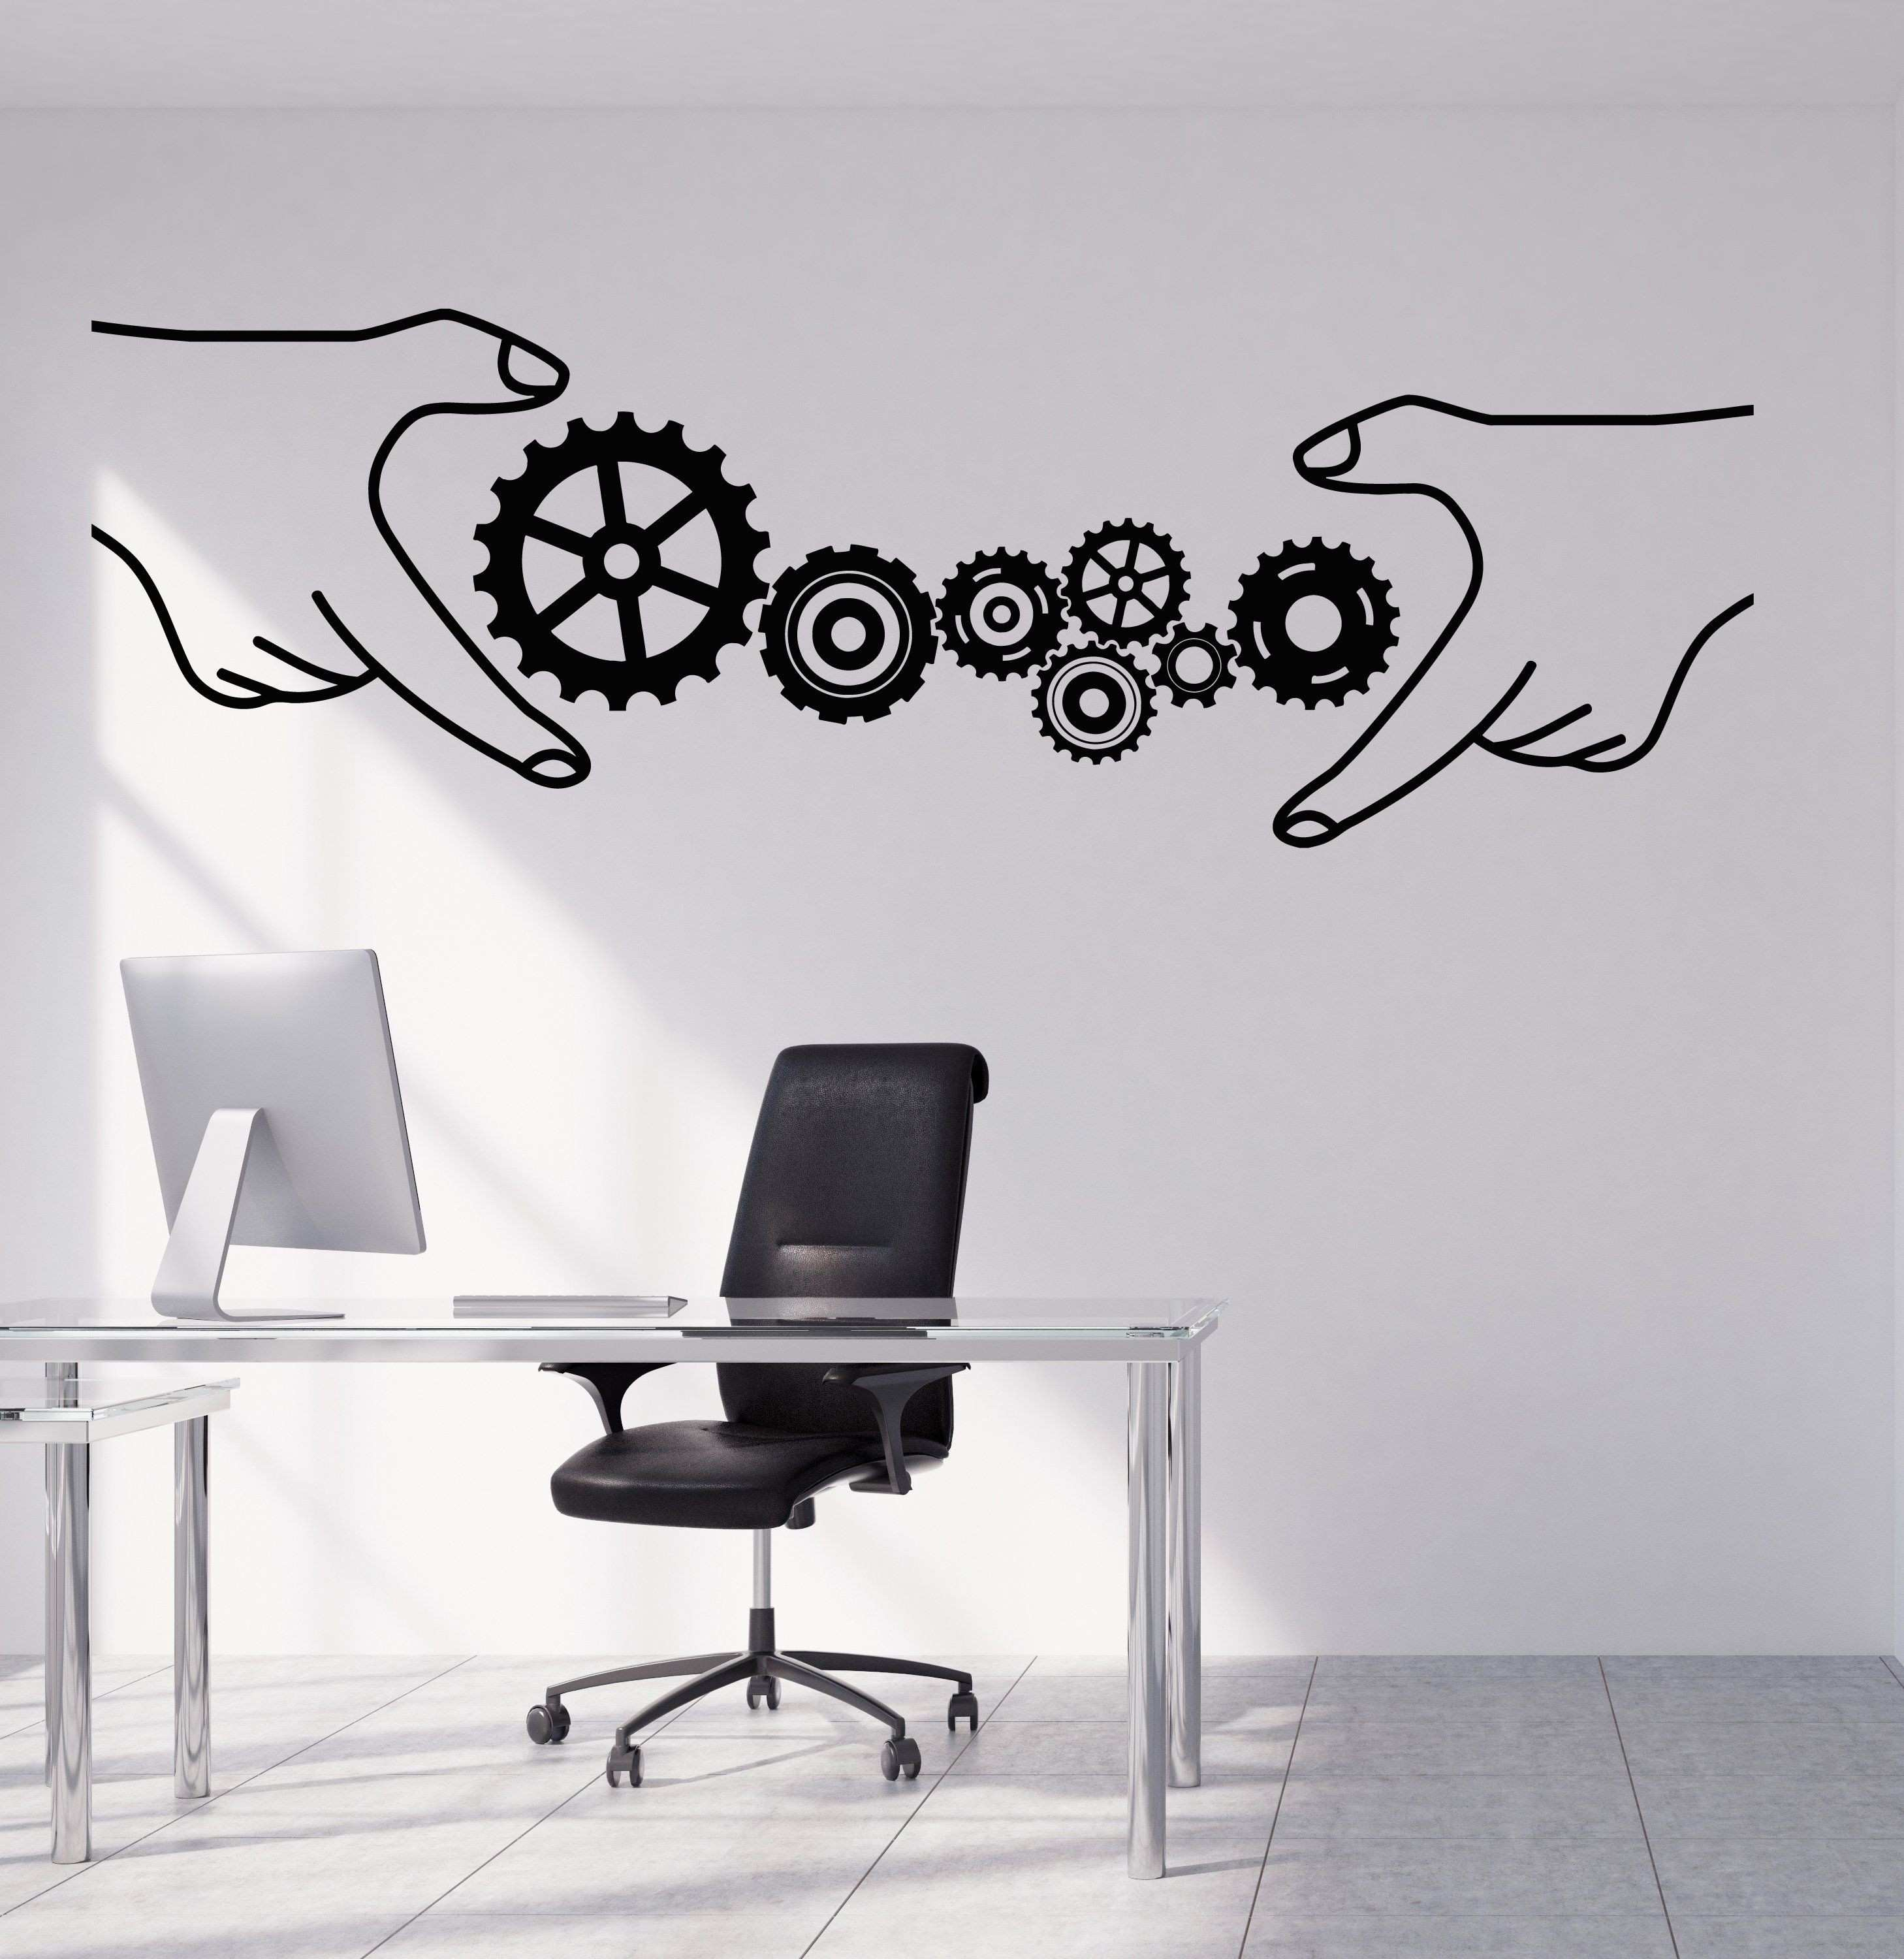 Vinyl Wall Decal Gears fice Style Business Teamwork Stickers